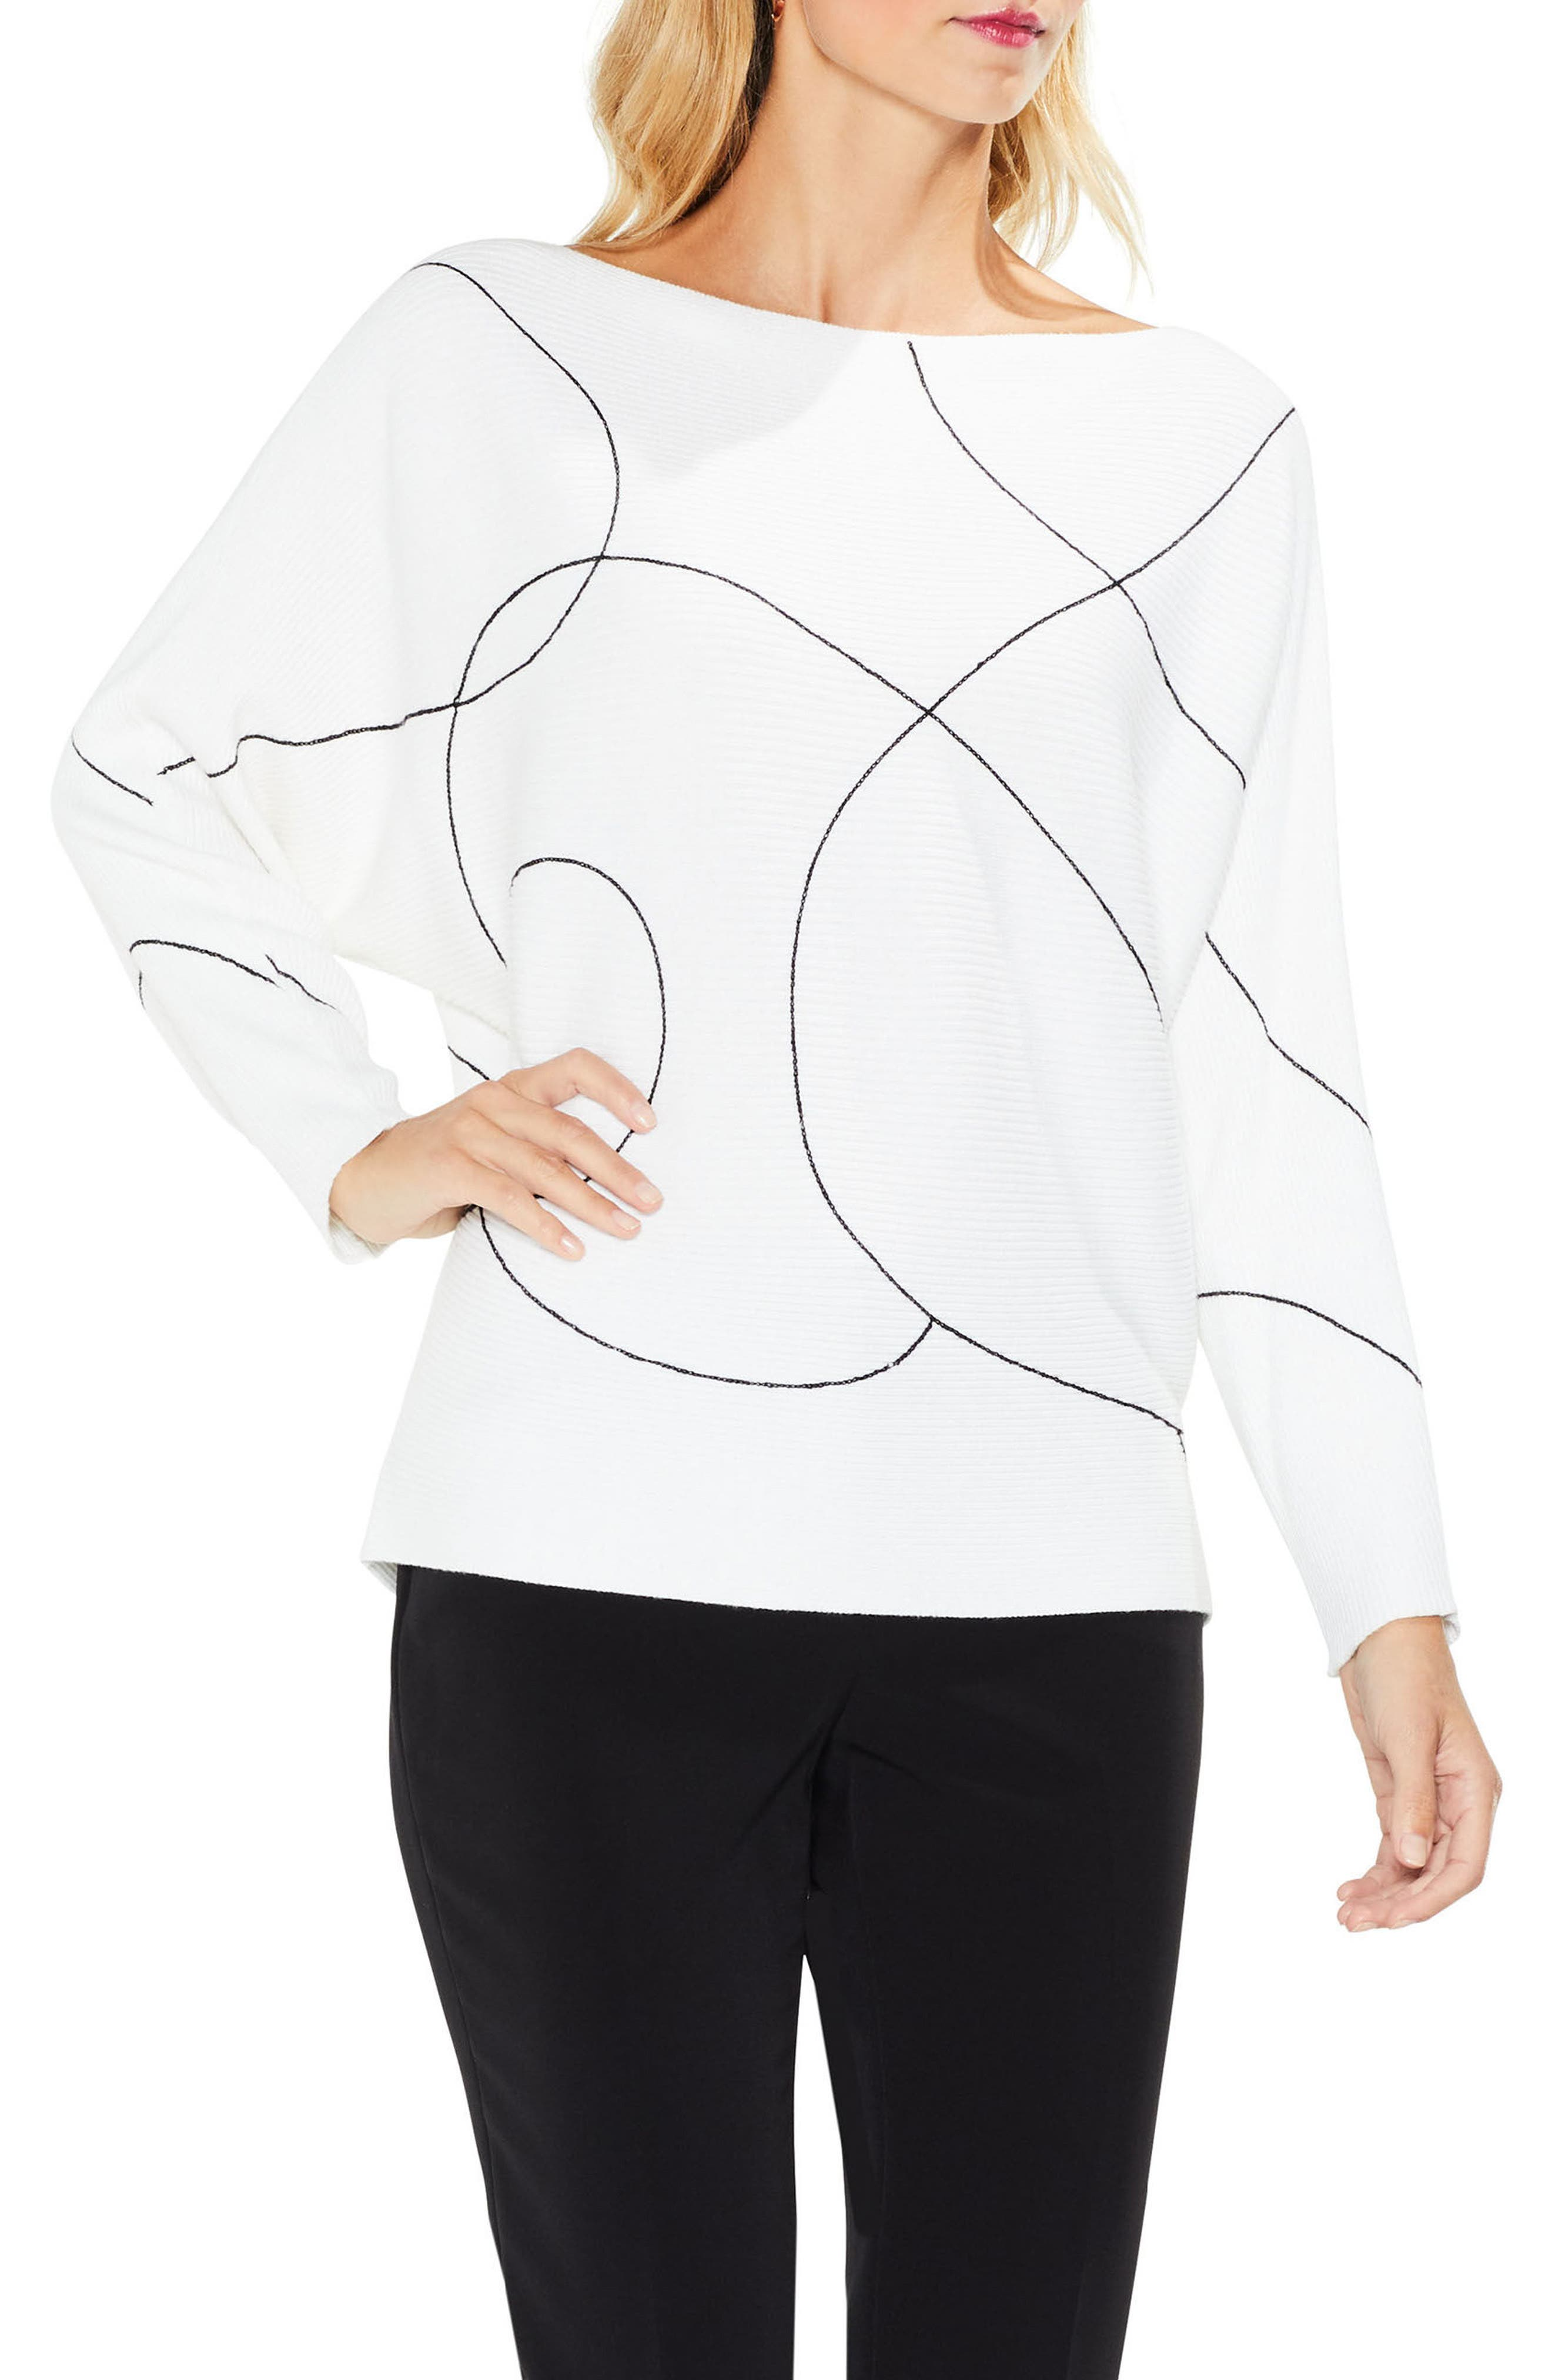 Main Image - Vince Camuto Ink Swirl Ribbed Sweater (Regular & Petite)